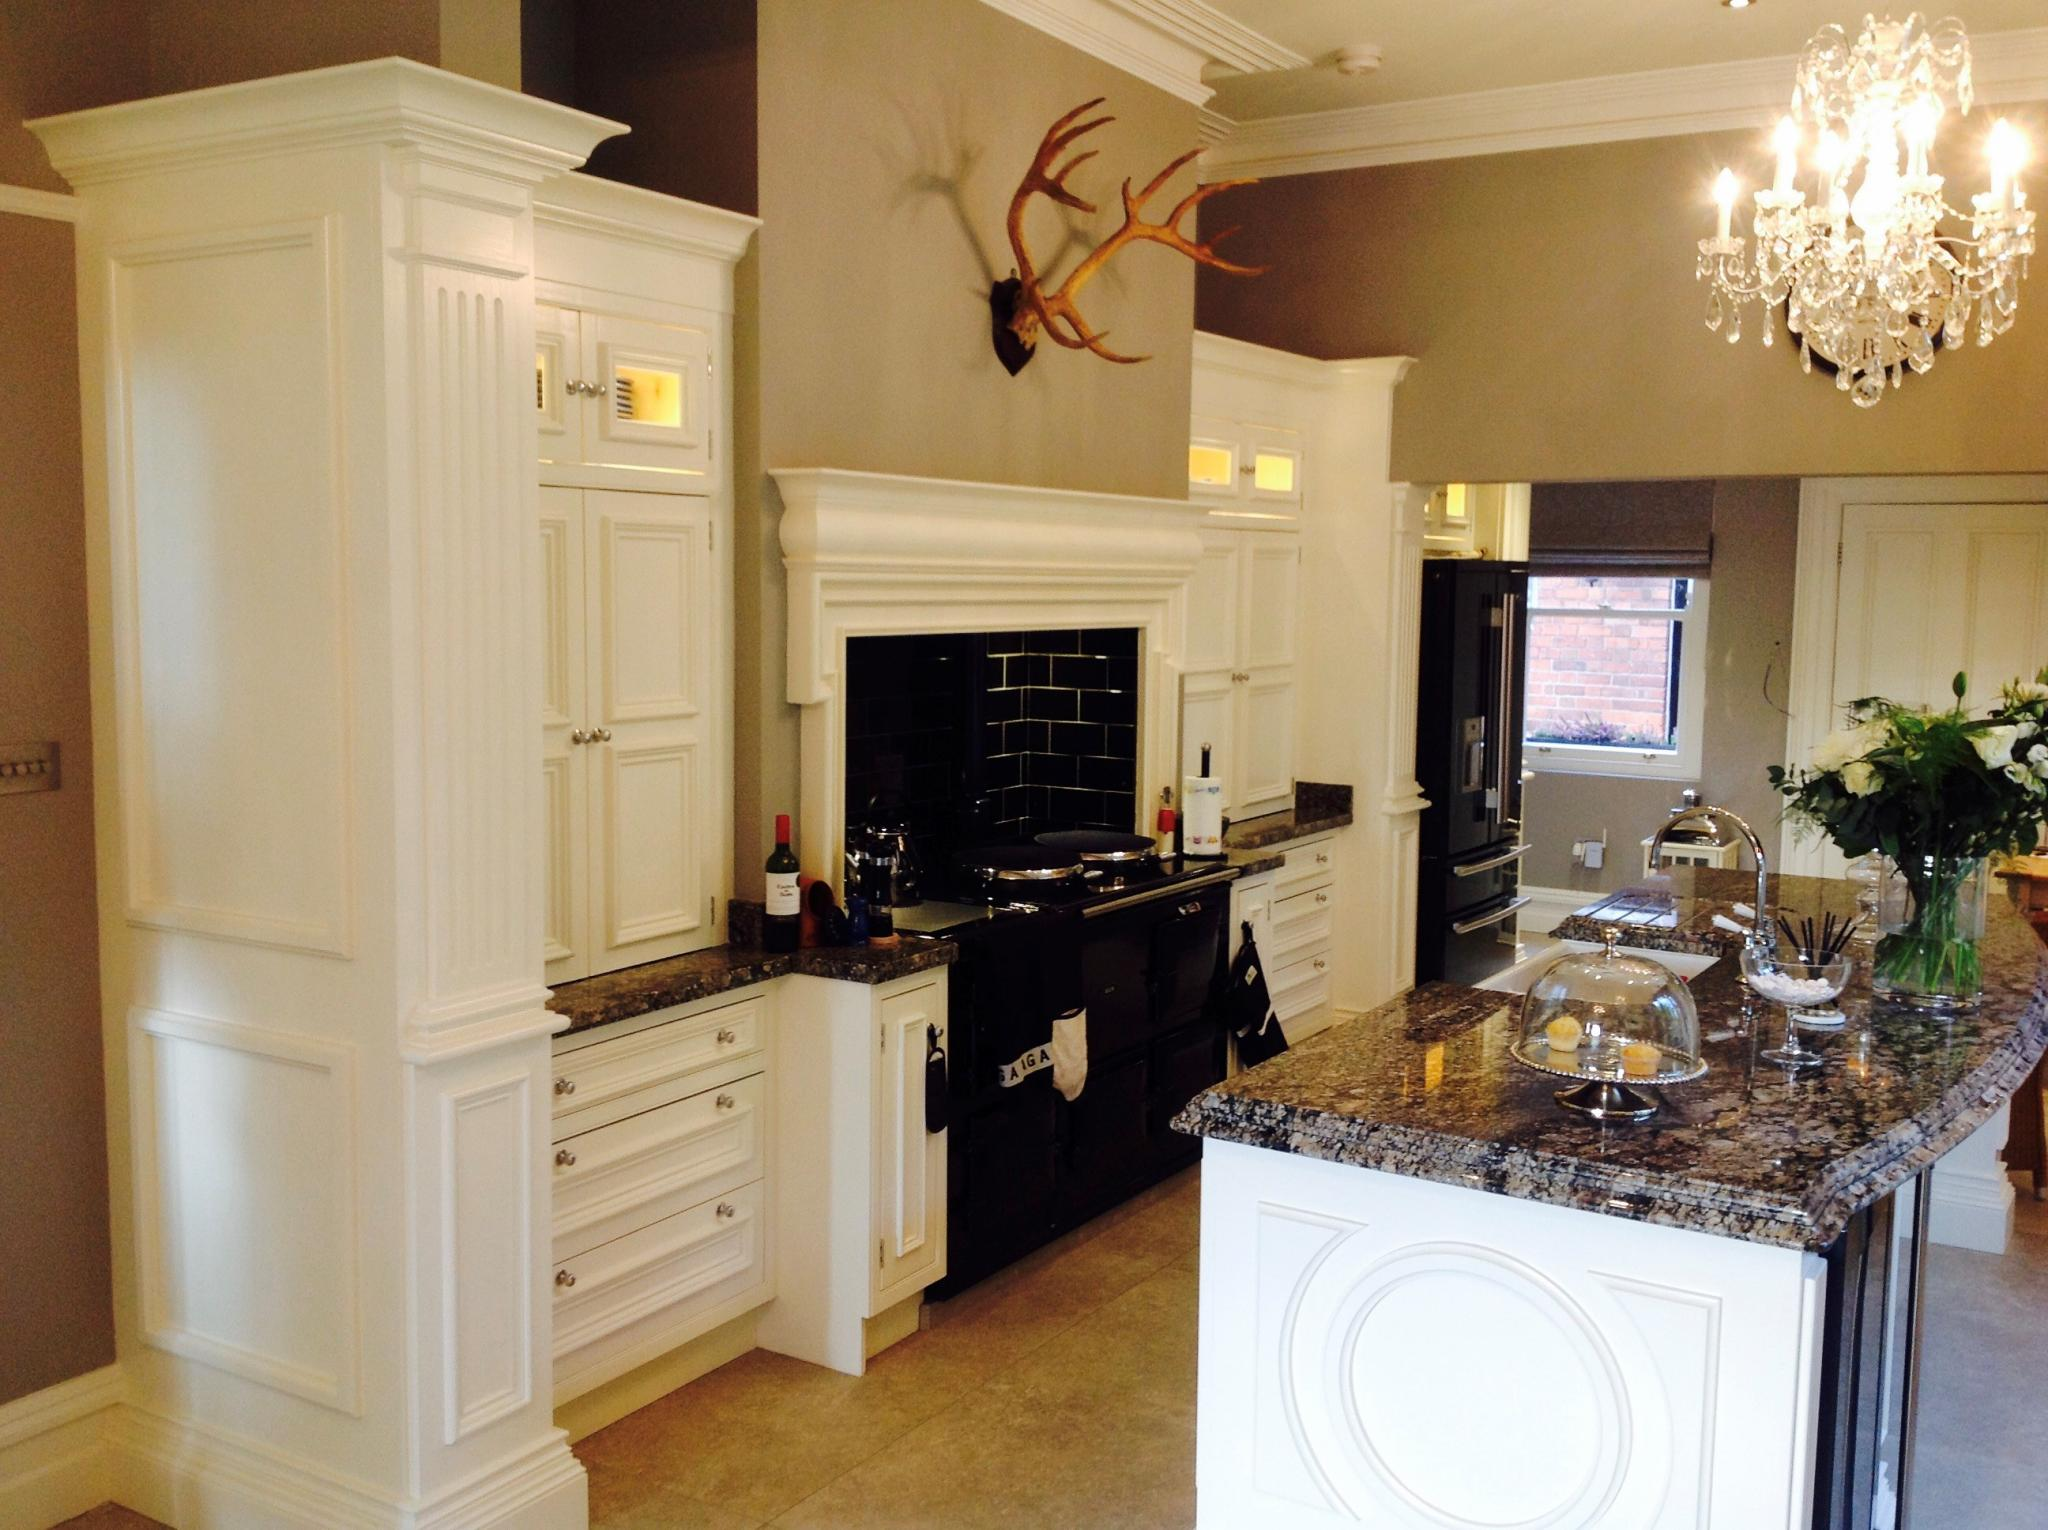 80% OFF RRP £100,000+ BRAND NEW Regency/Clive Christian Style Bespoke  Kitchen Units with Island, Ireland